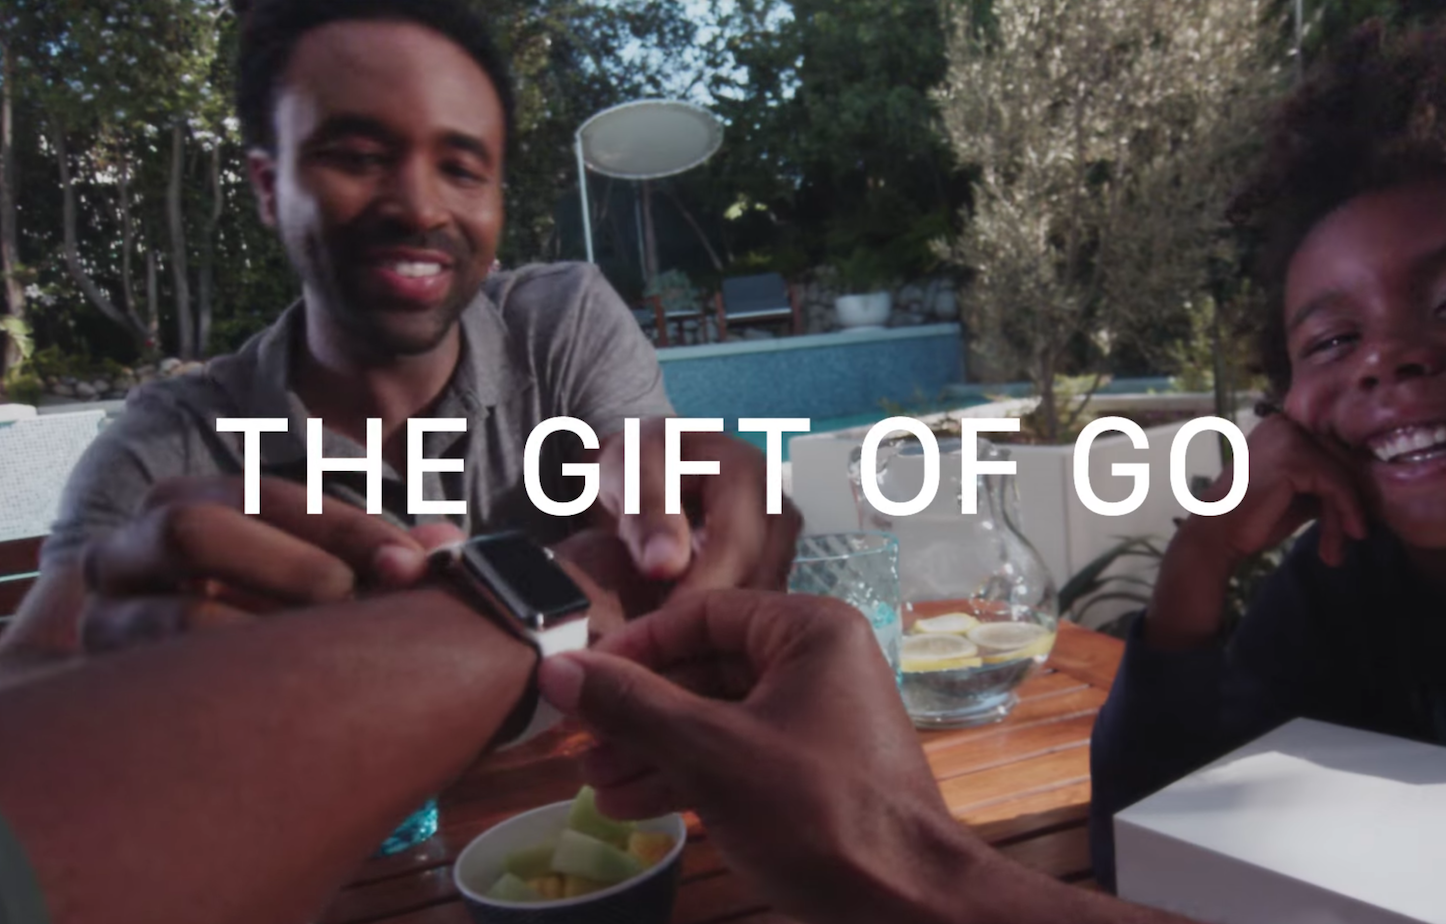 The gift of go apple watch